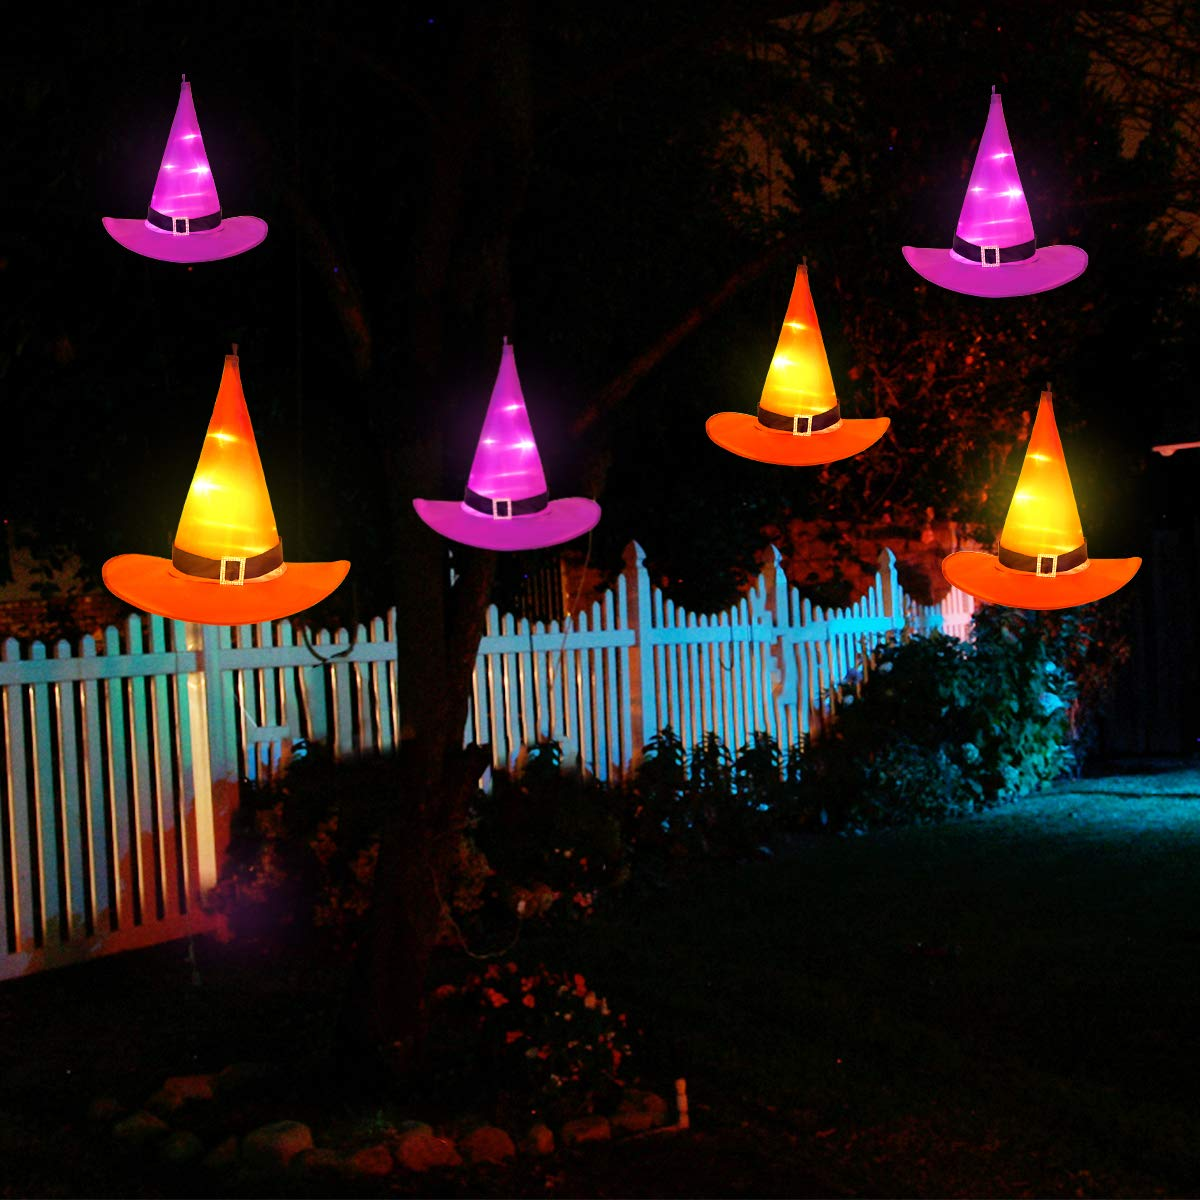 YUNLIGHTS Halloween Decorations 6Pcs Witchs Hat Decor Light 33ft String Lights for Indoor,Outdoor,Garden, Trees, Party Decor by YUNLIGHTS